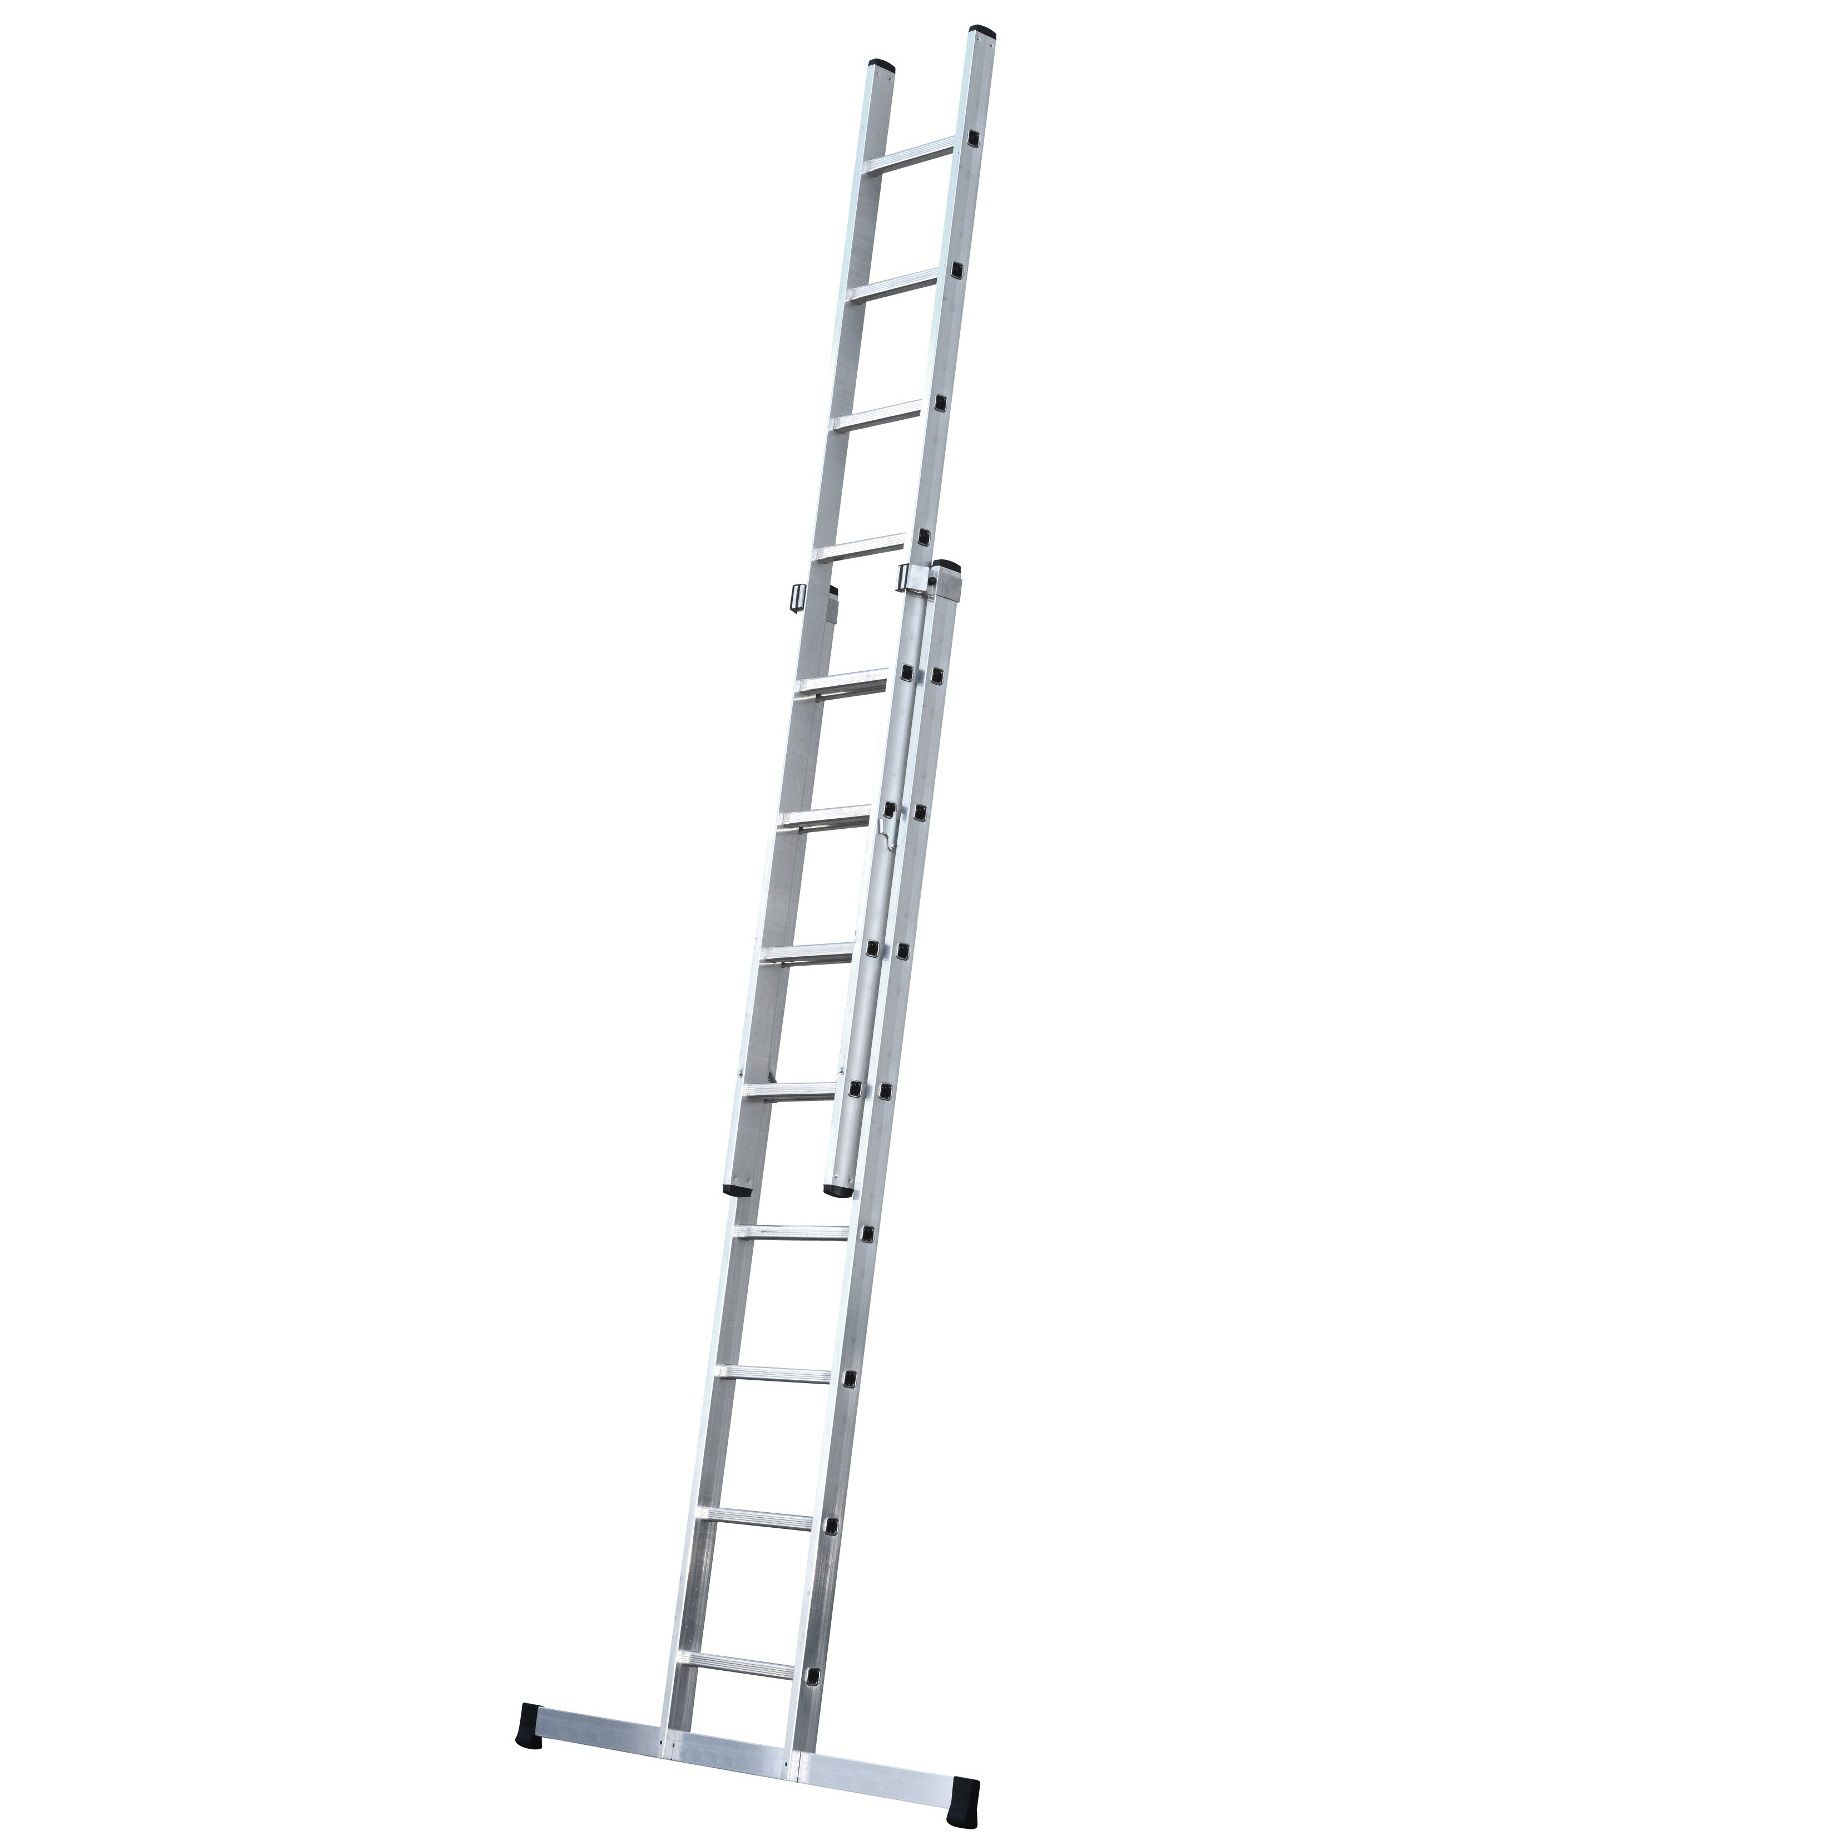 Youngman 2 Section Trade 200 Ladders